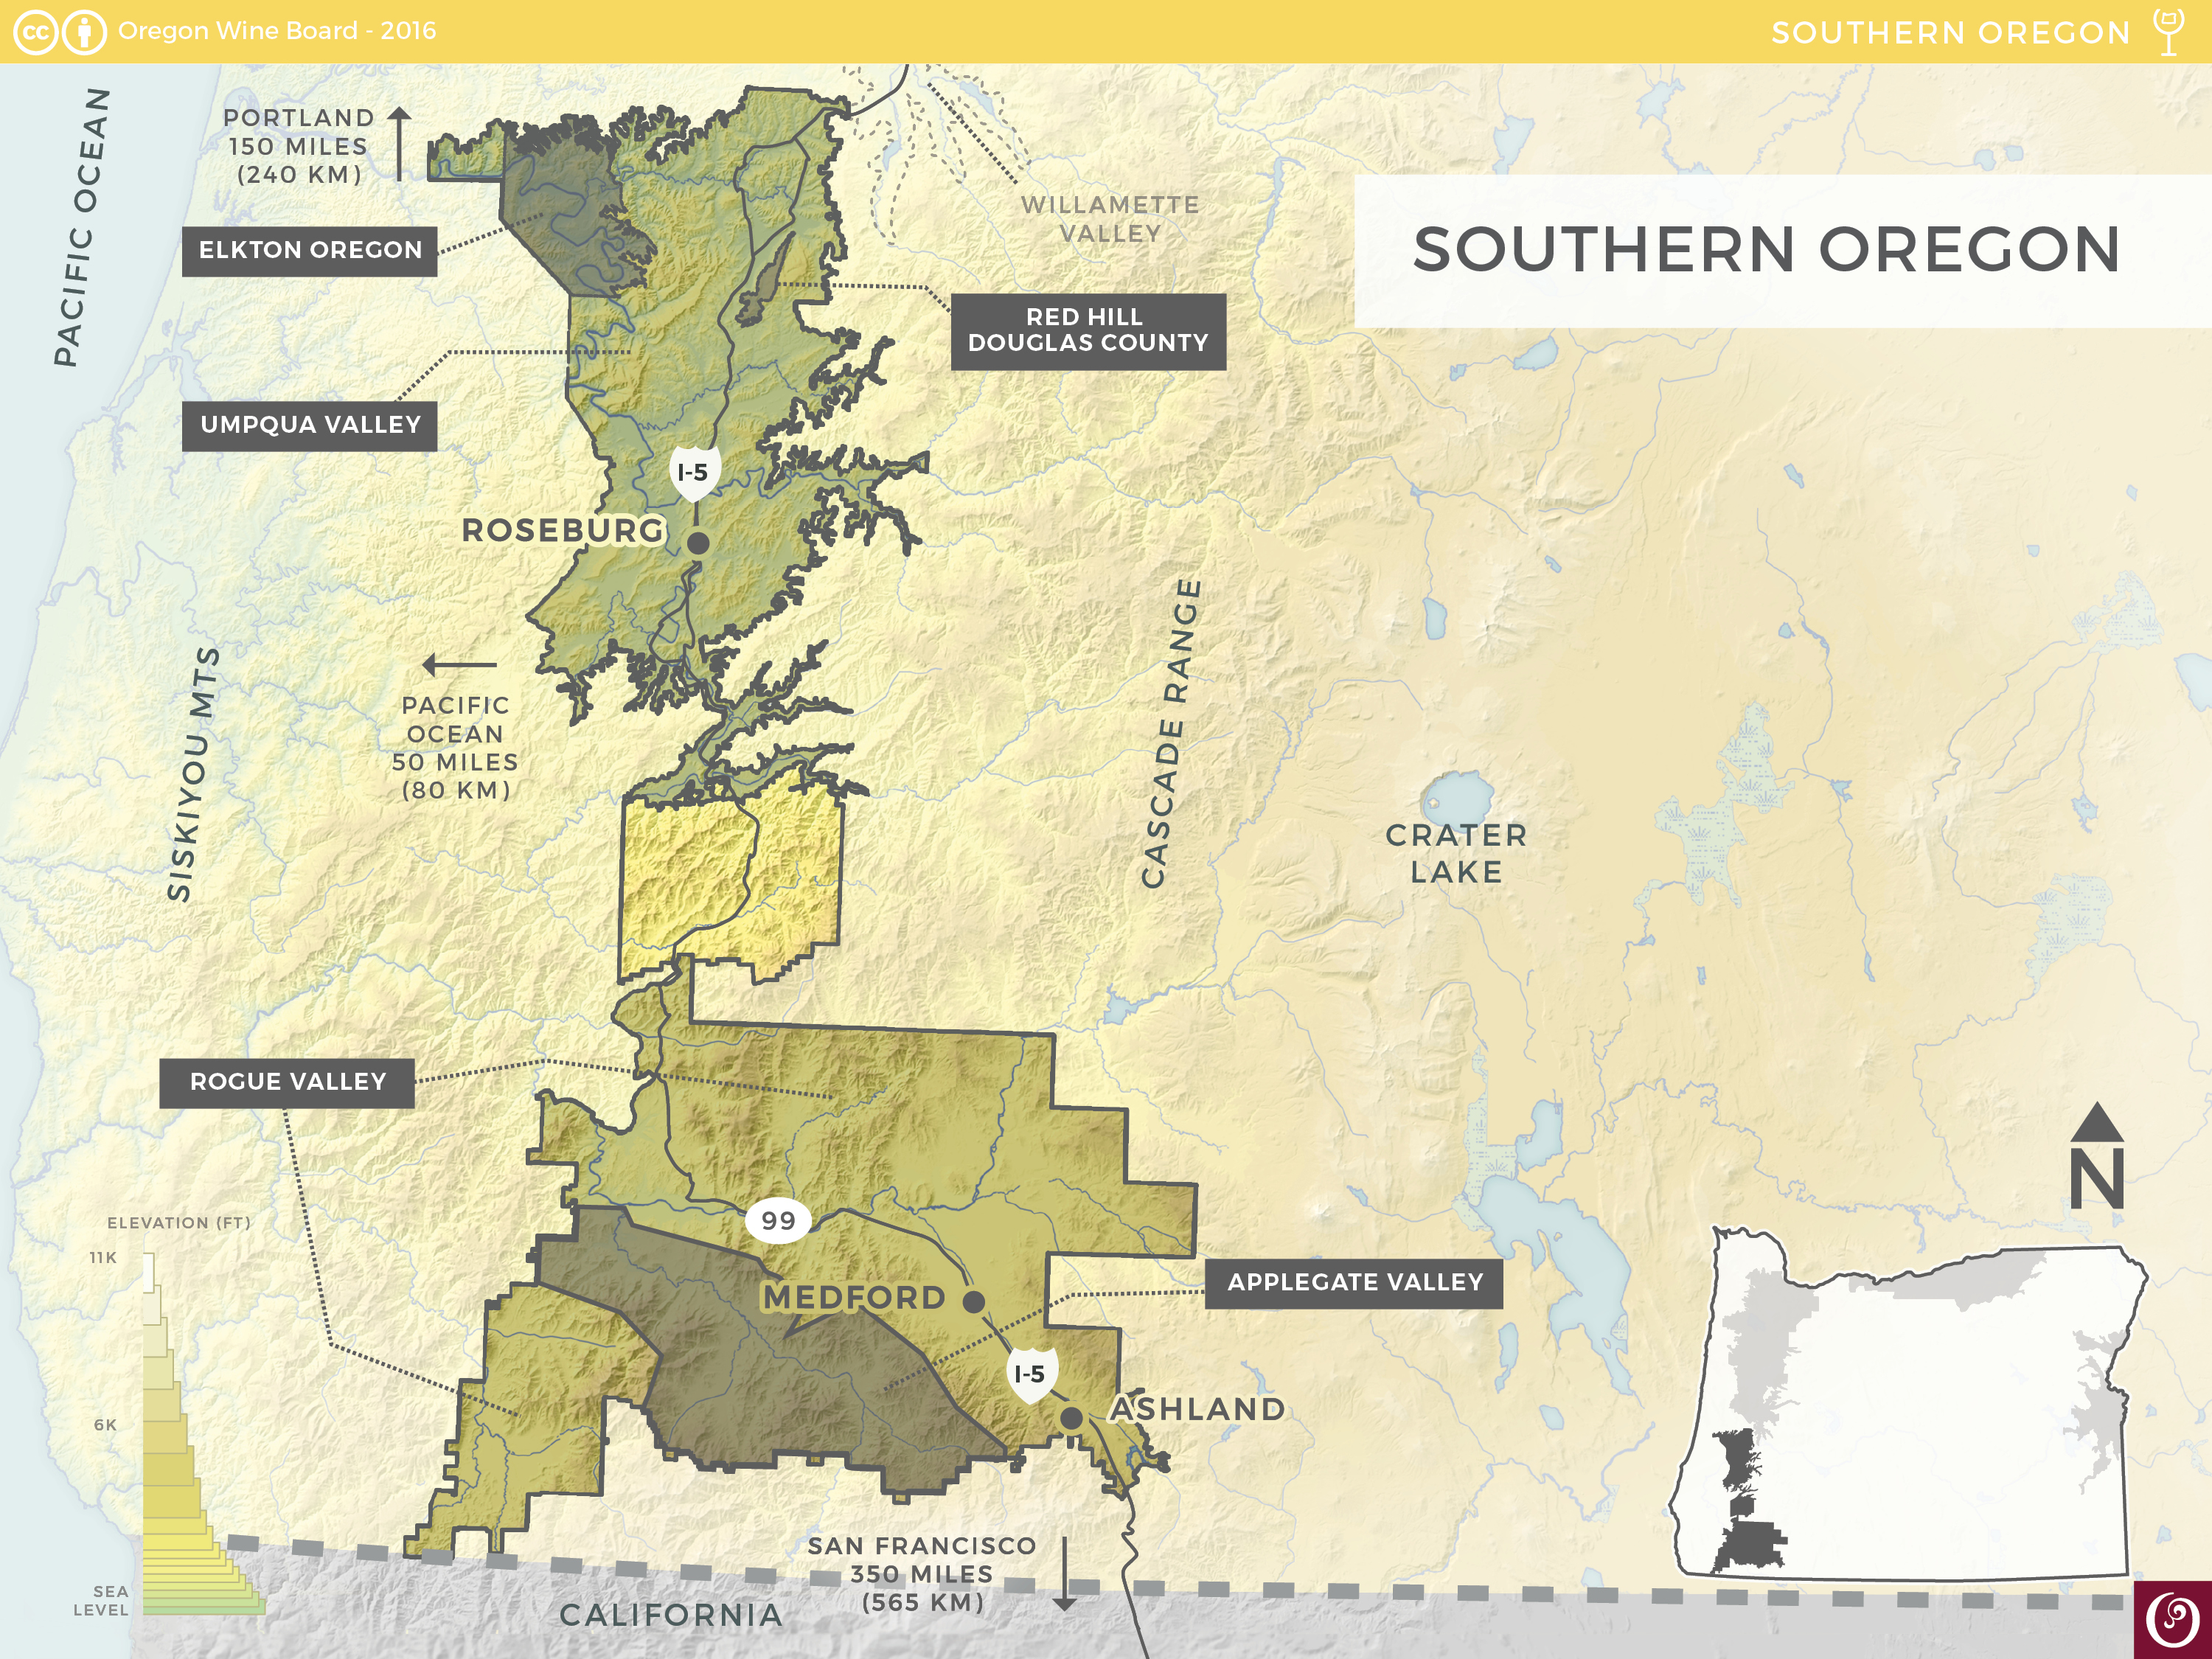 oregon wine map southern or avaowbtrade2016 10